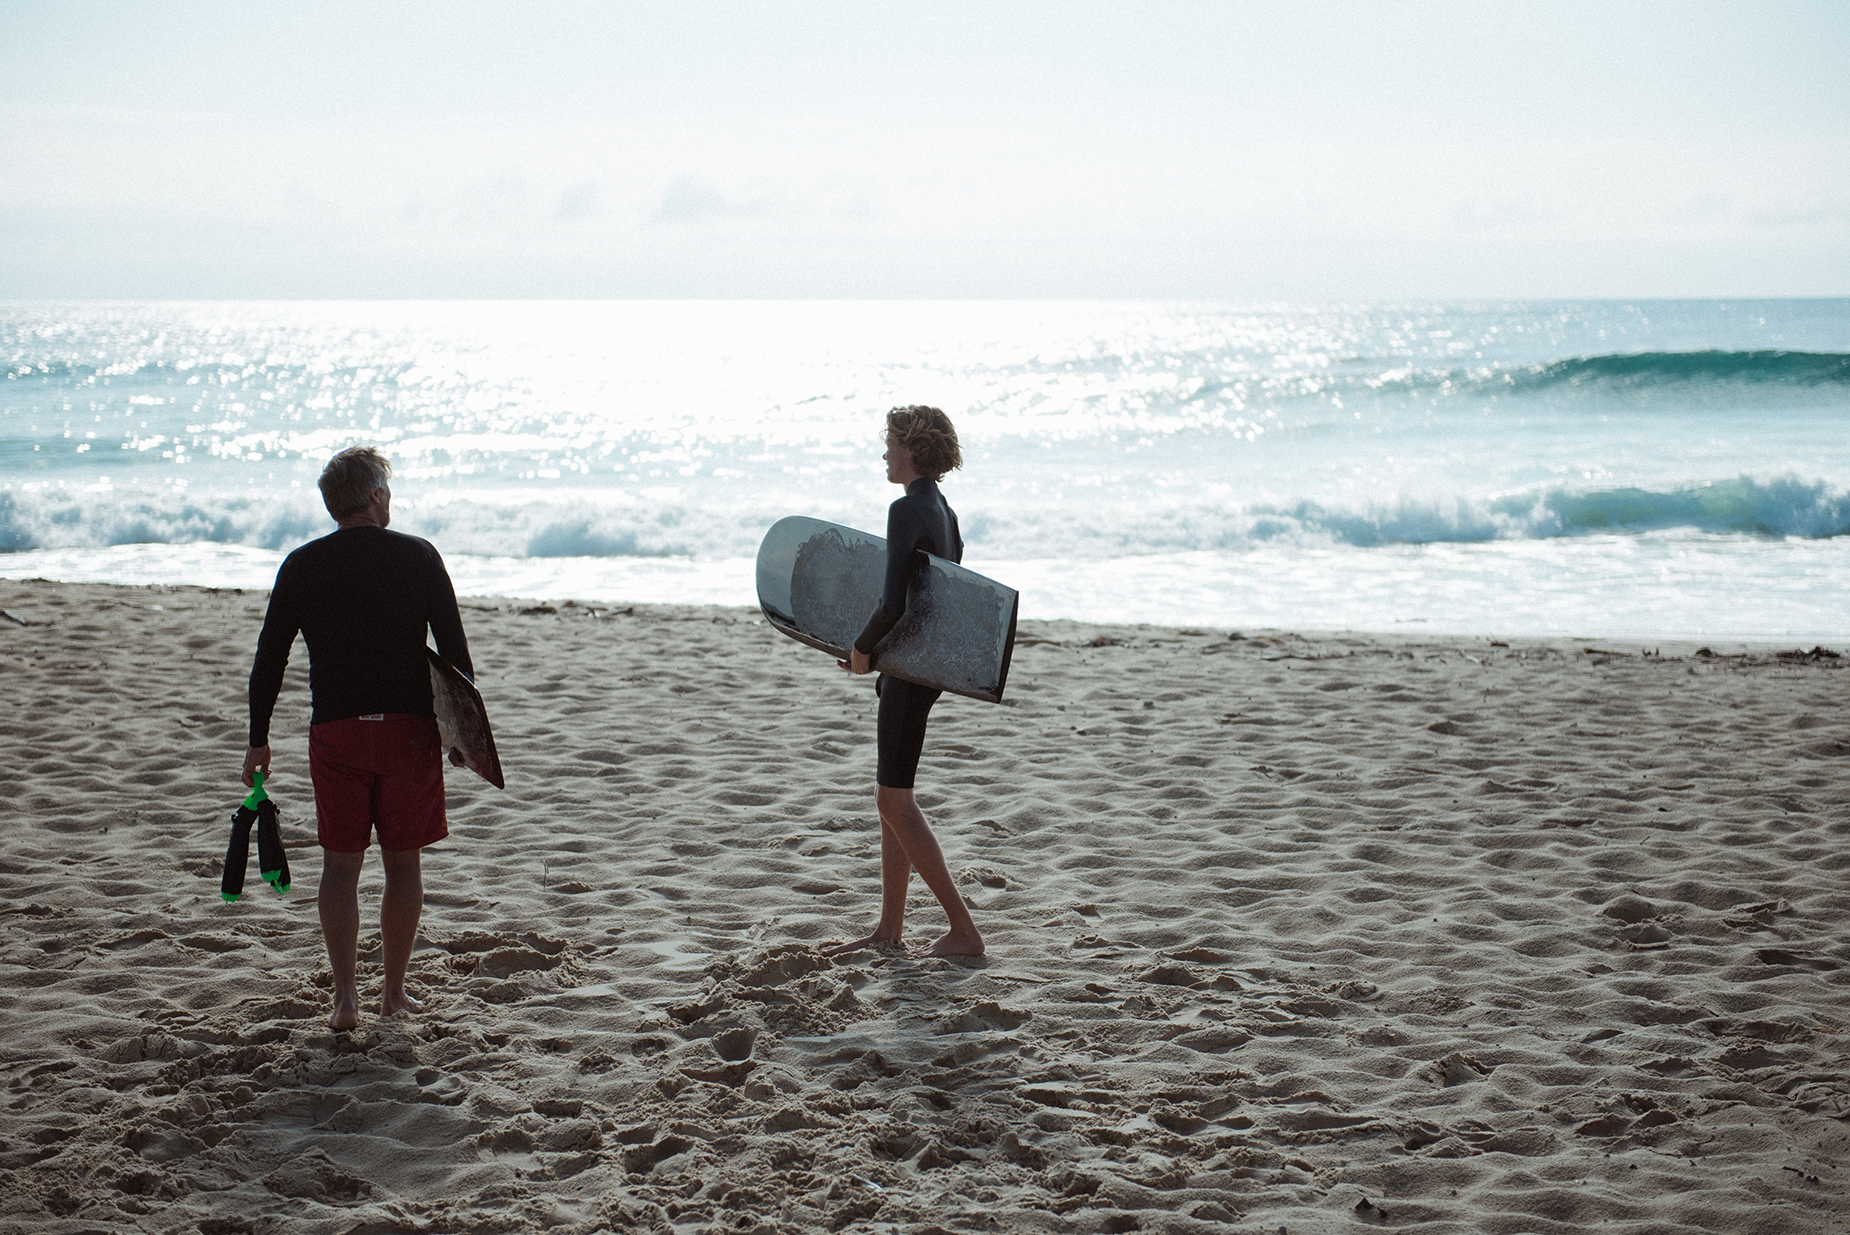 From surfing to traditional crafts.